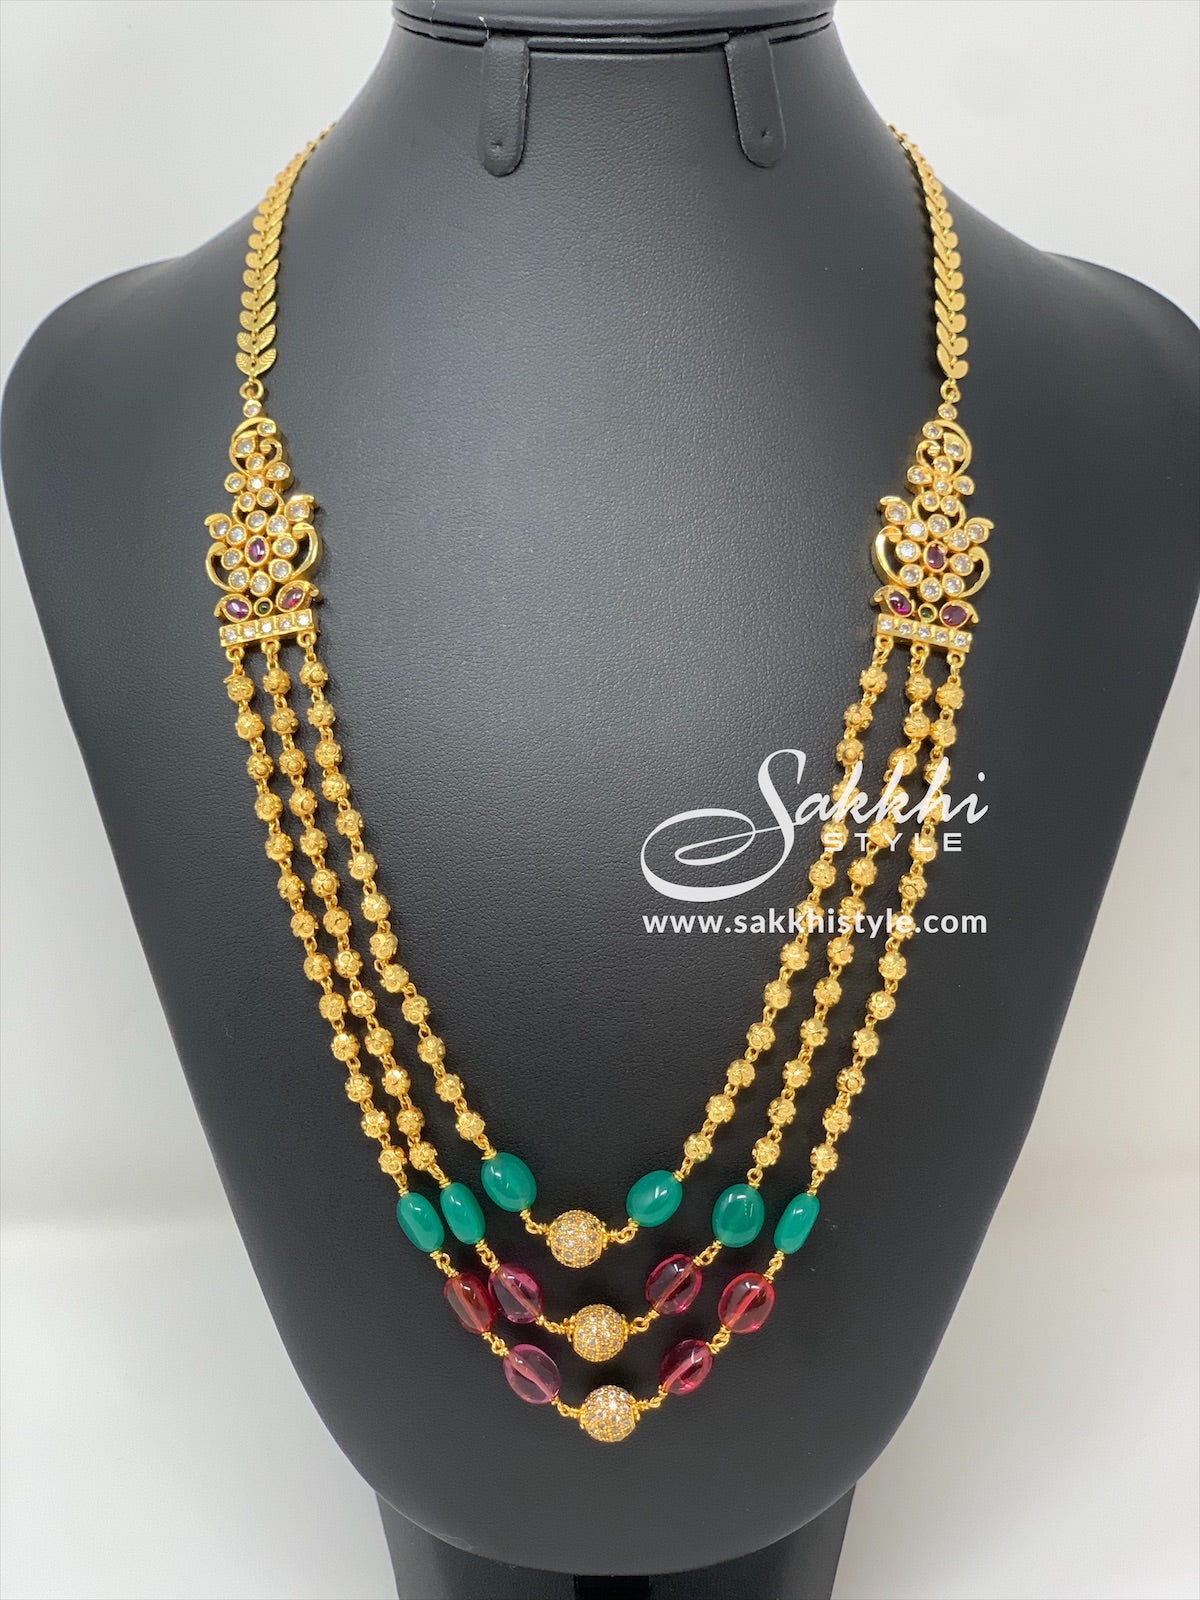 Gundla Mala Necklace with Green and Pink Beads - Sakkhi Style